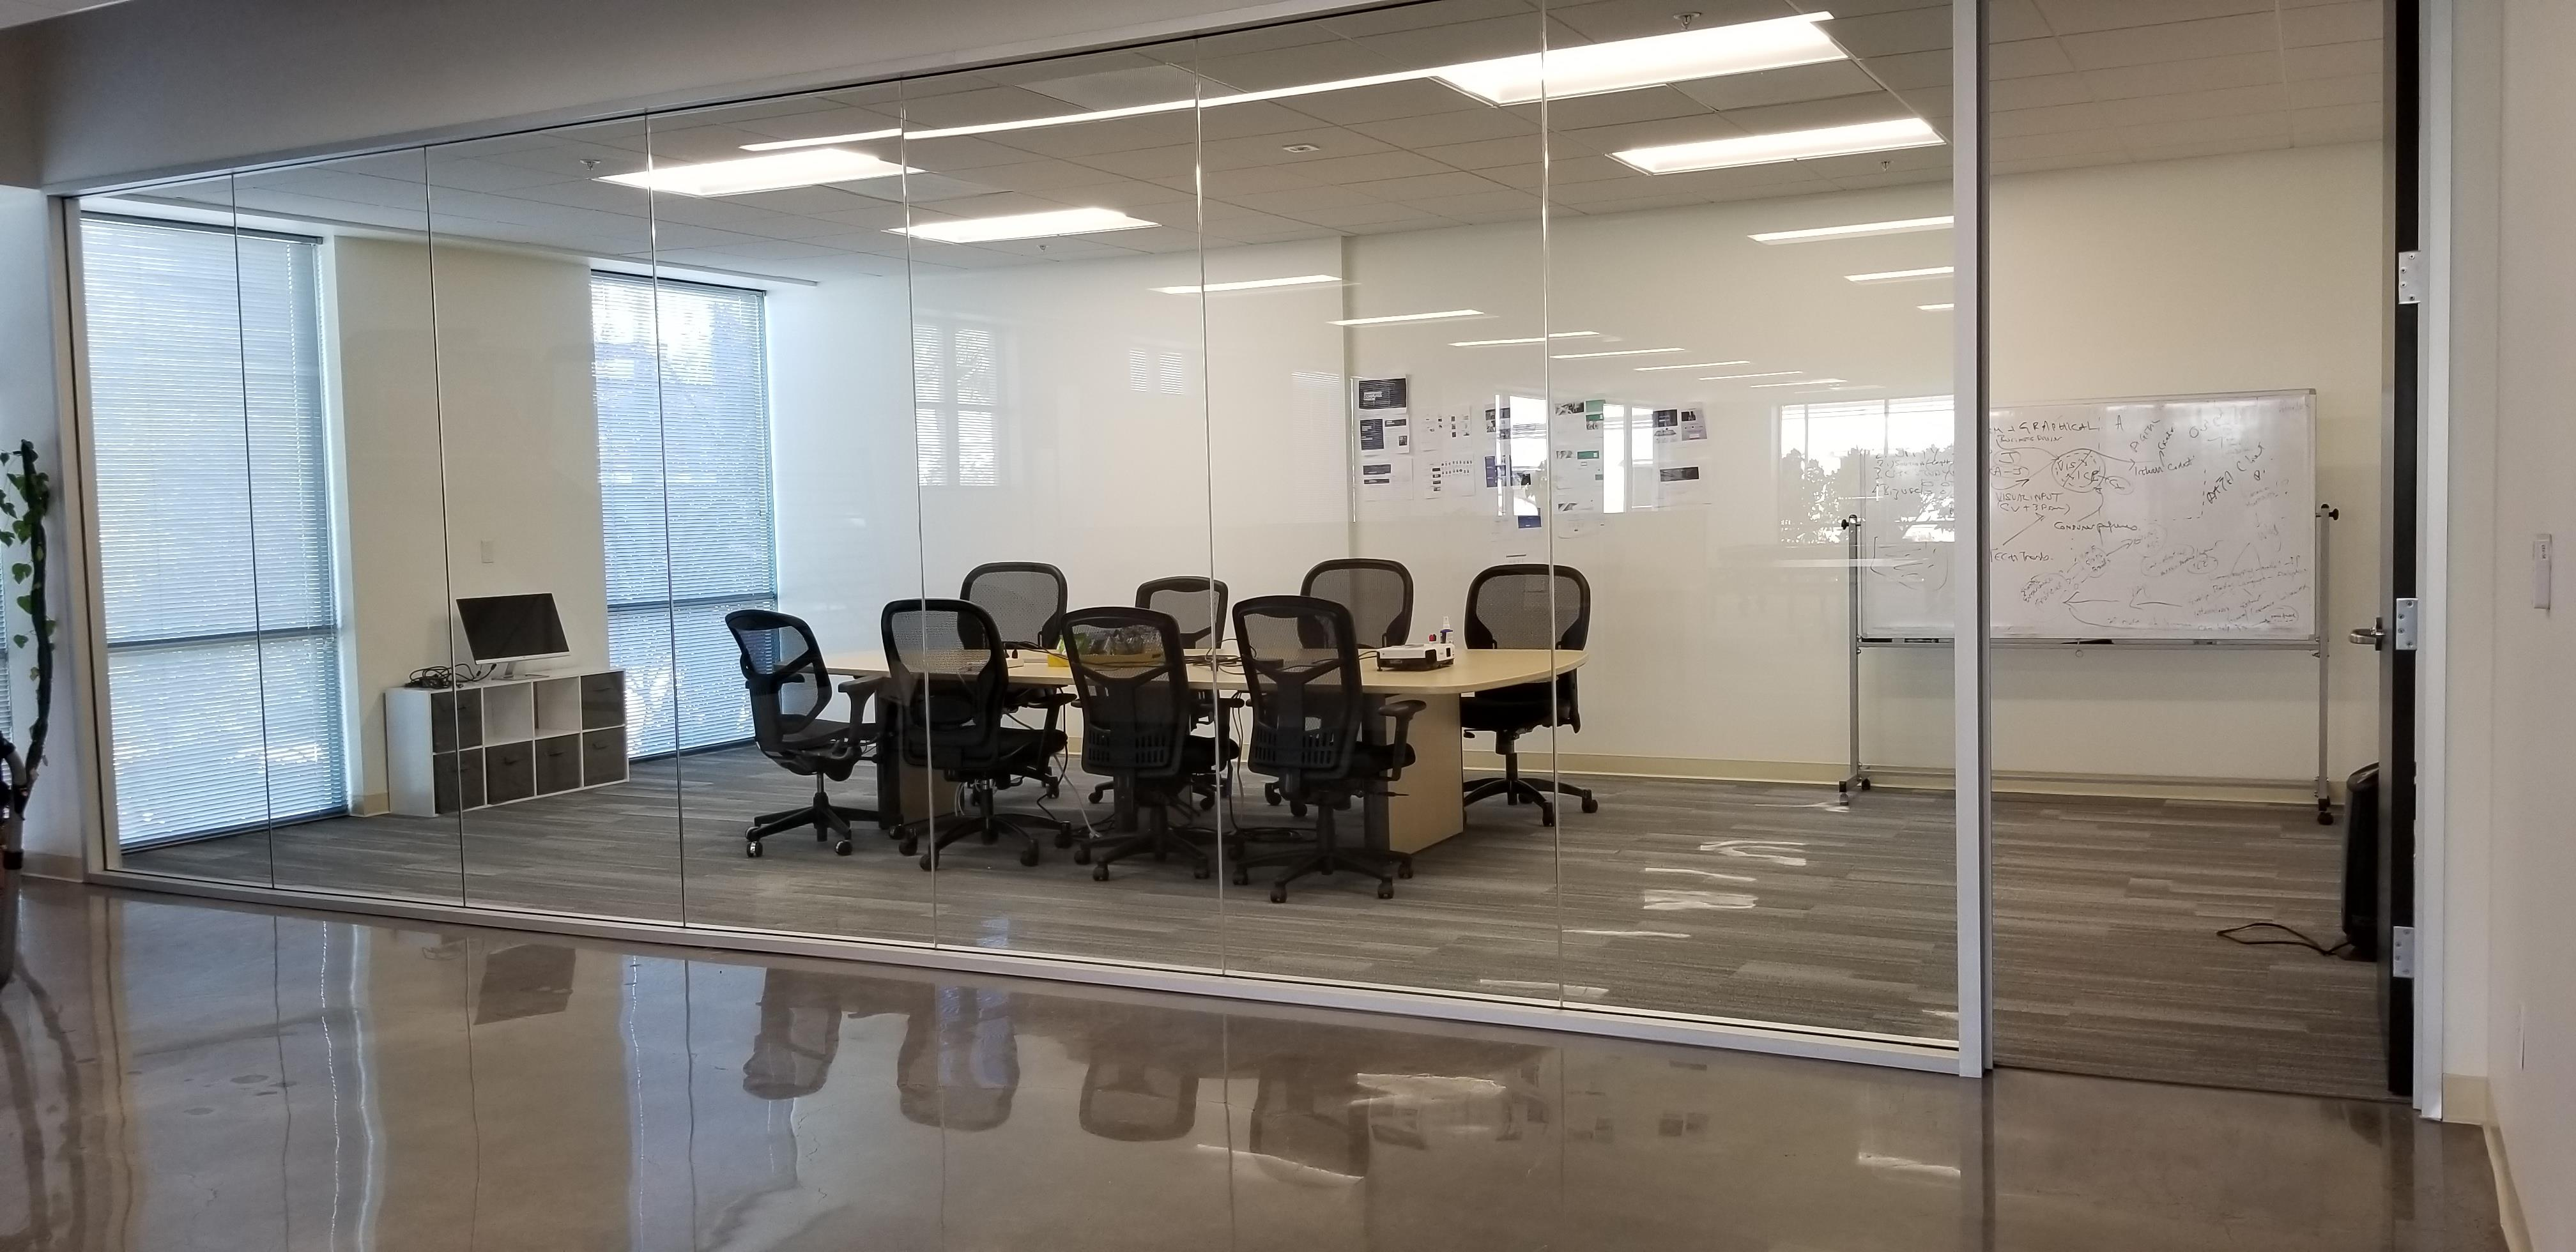 YS, Inc. - Conference Room